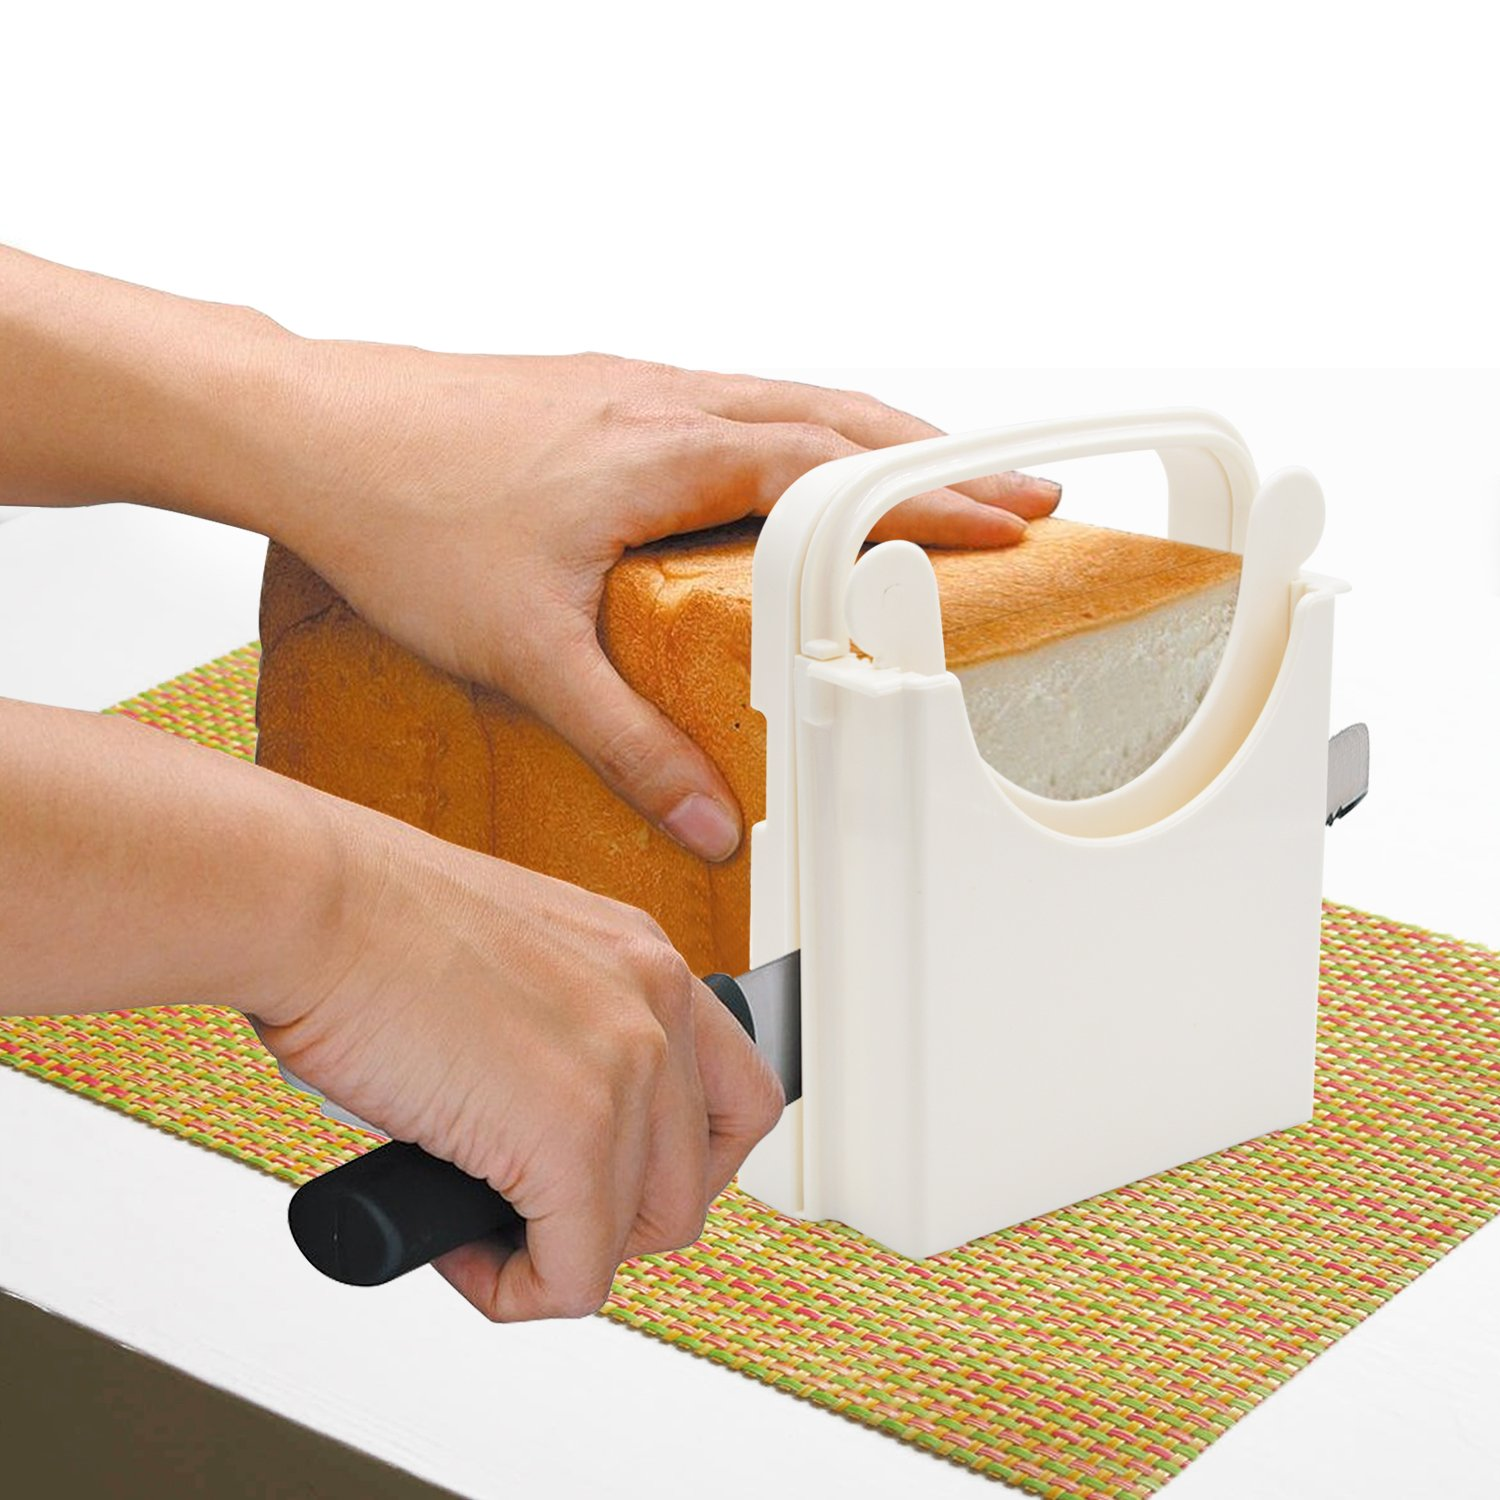 Bread Slicer Toast Slicer Yummy Sam Toast Cutting Guide Bread Toast Bagel Loaf Slicer Cutter Mold Sandwich Maker Toast Slicing Machine Folding and Adjustable with 5 Slice Thicknesses by Yummy Sam (Image #2)